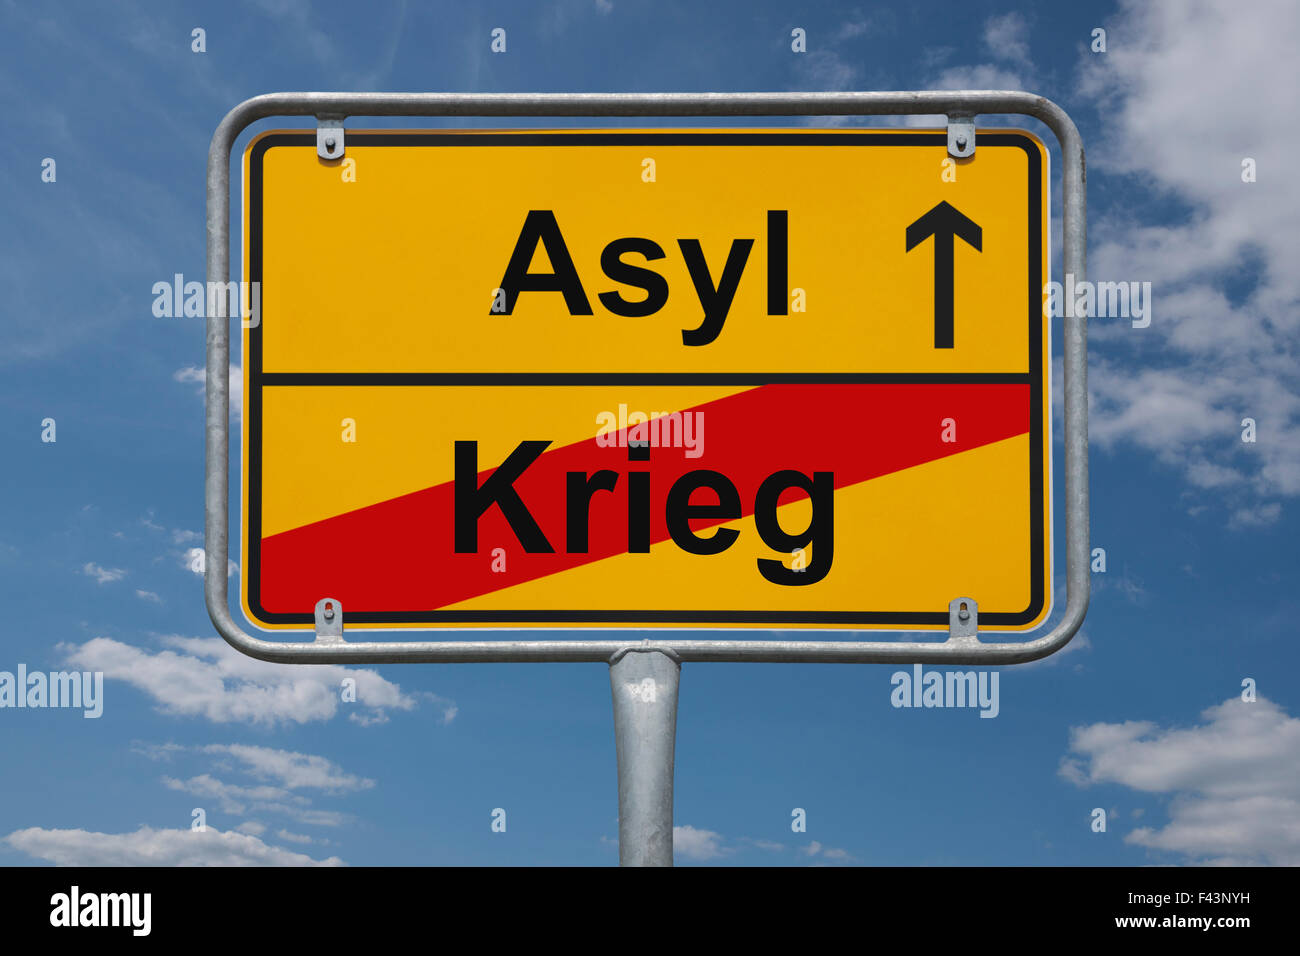 Town sign Germany, End of the town with the inscription Ende Krieg (end of war), Beginn Asyl (start Asylum) - Stock Image